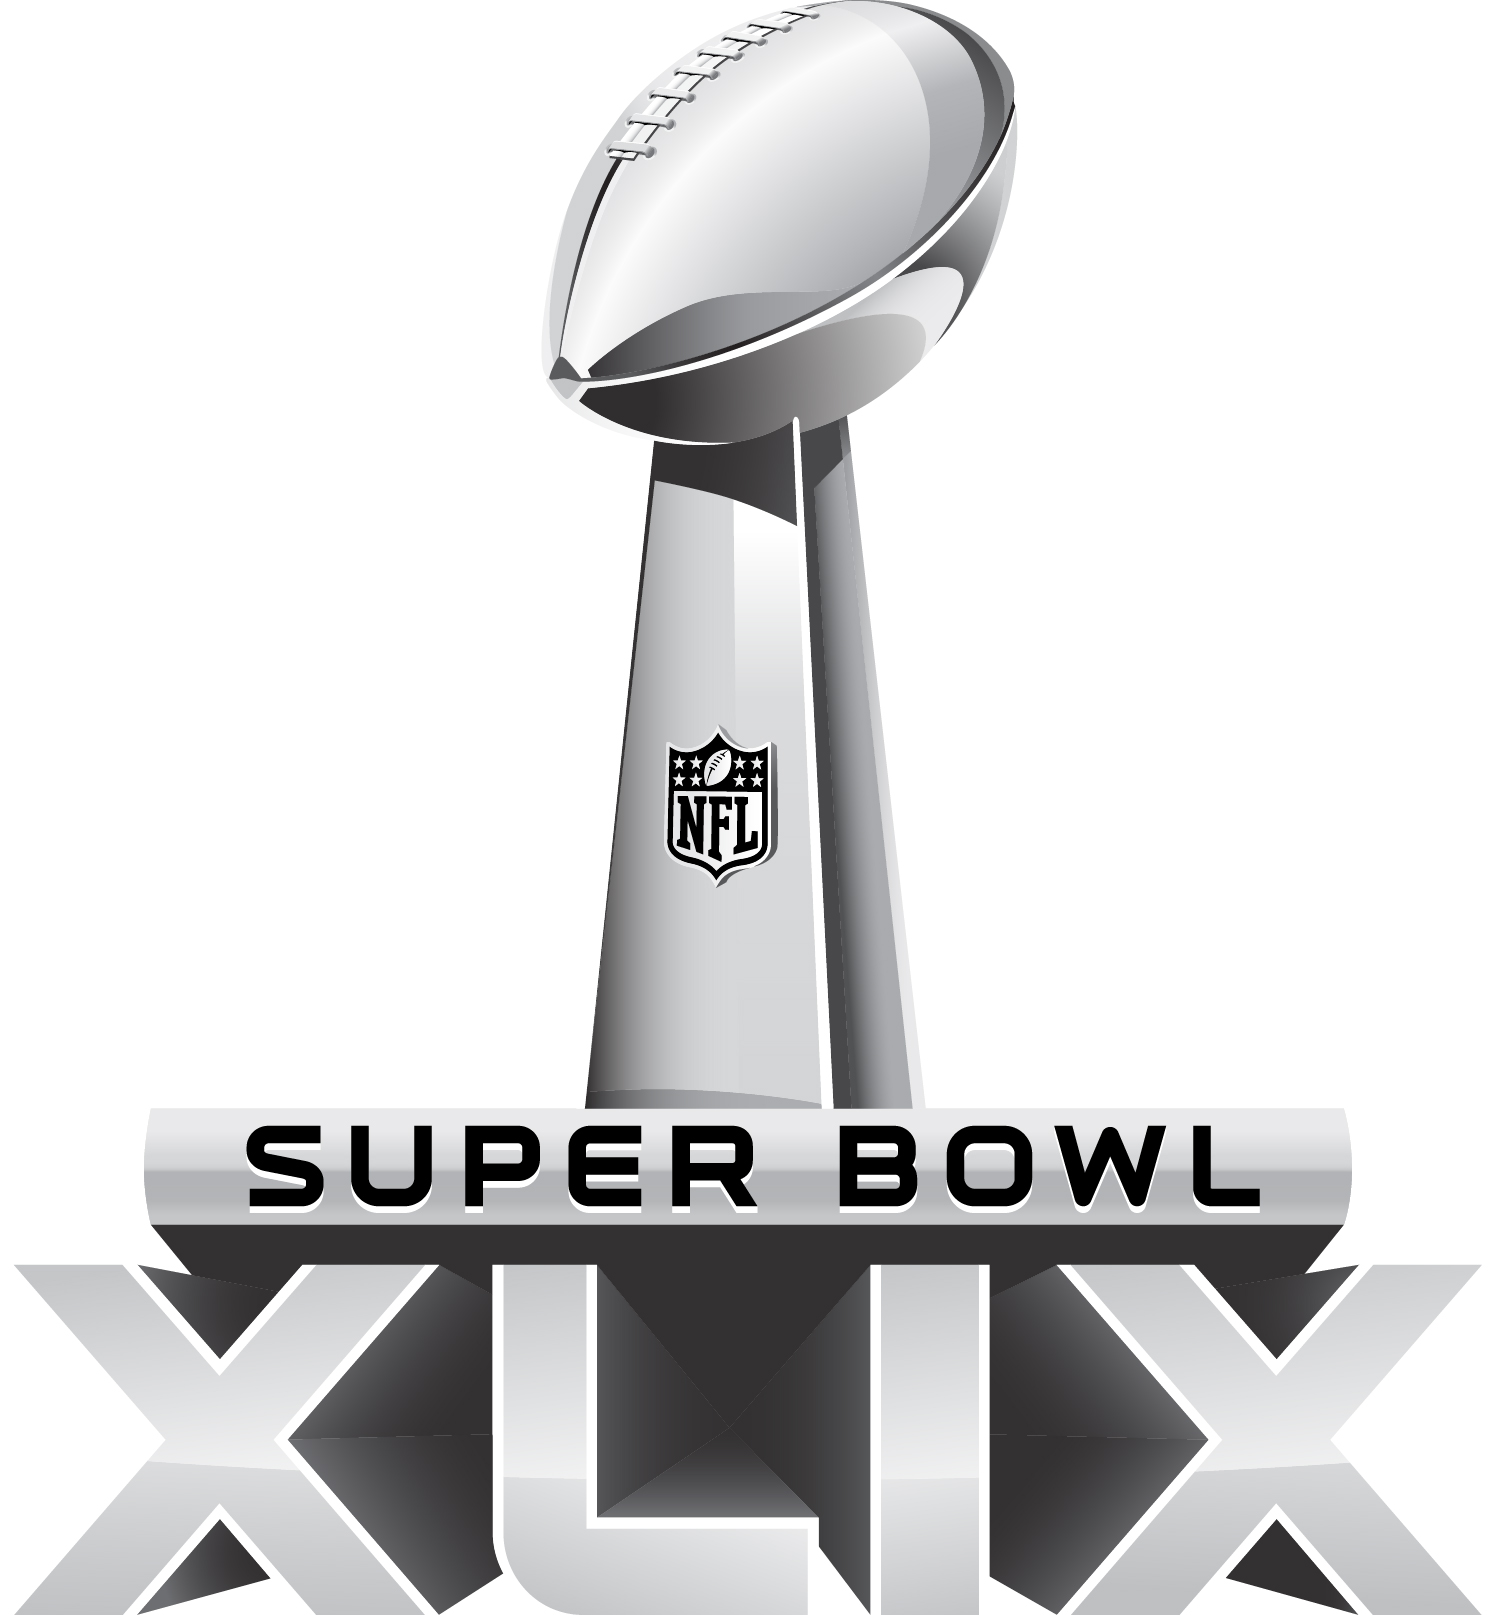 Estadisticas Del Super Bowl Xlix